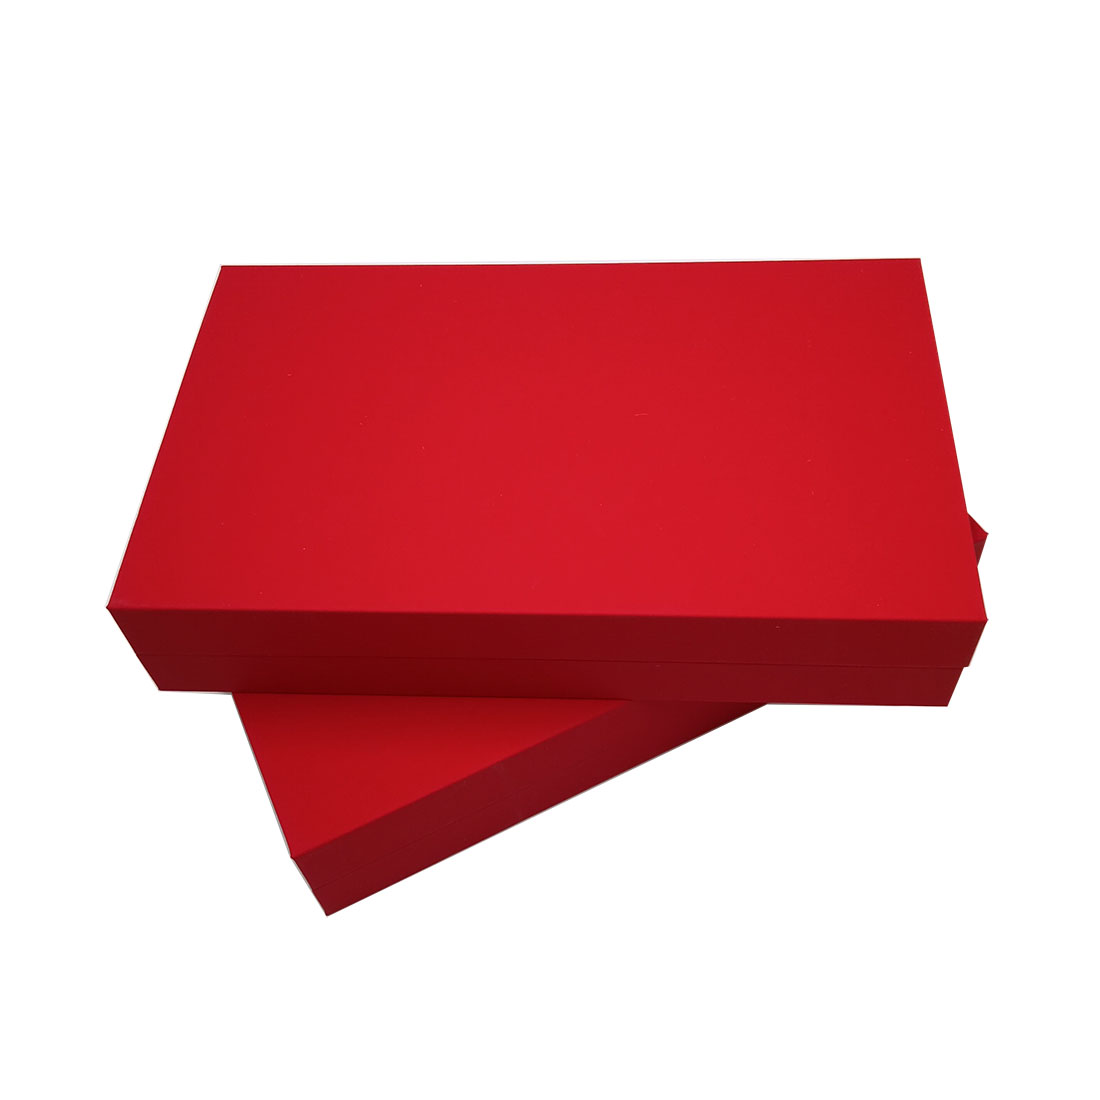 new style red box with magnetic closure gift box